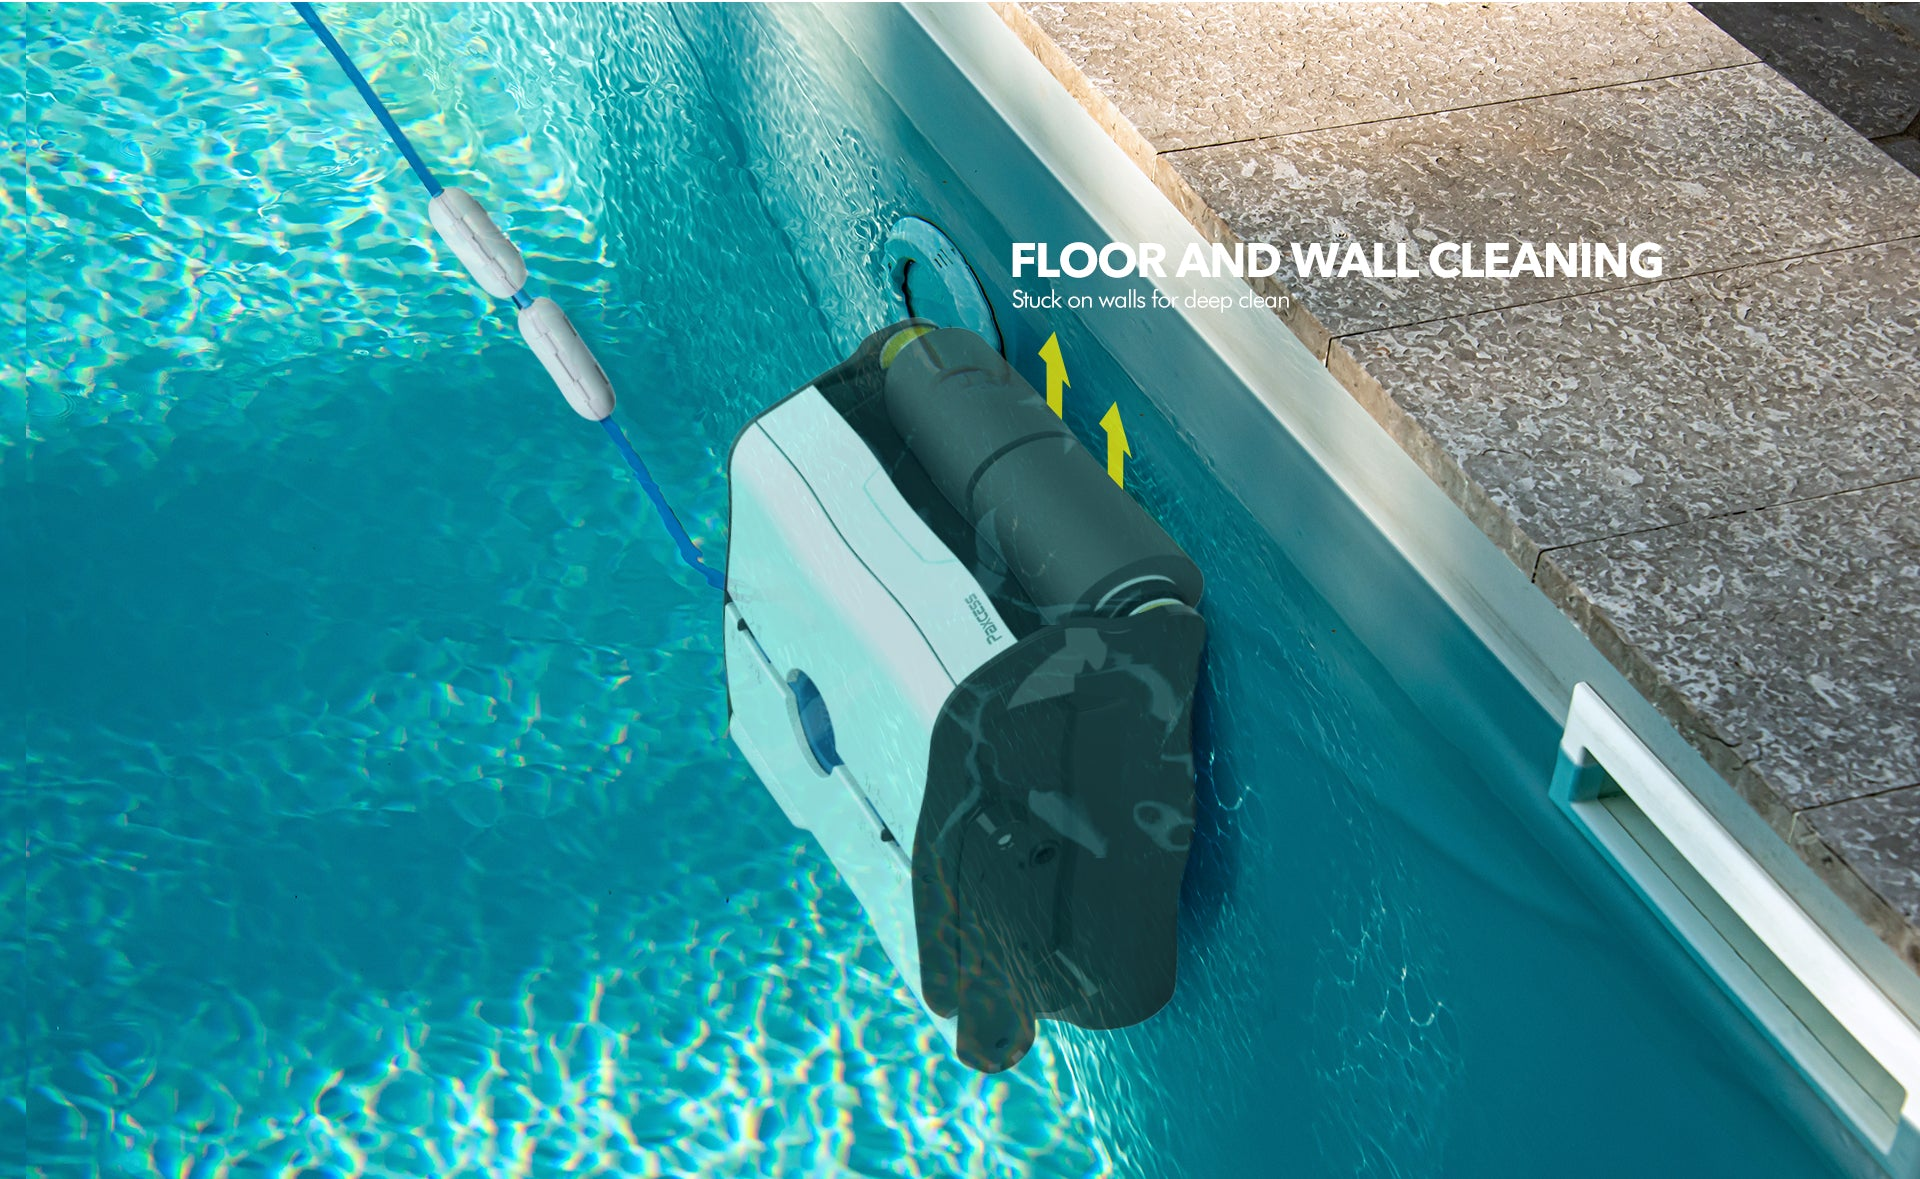 Paxcess Robotic Pool Cleaner with Wall Climbing Function